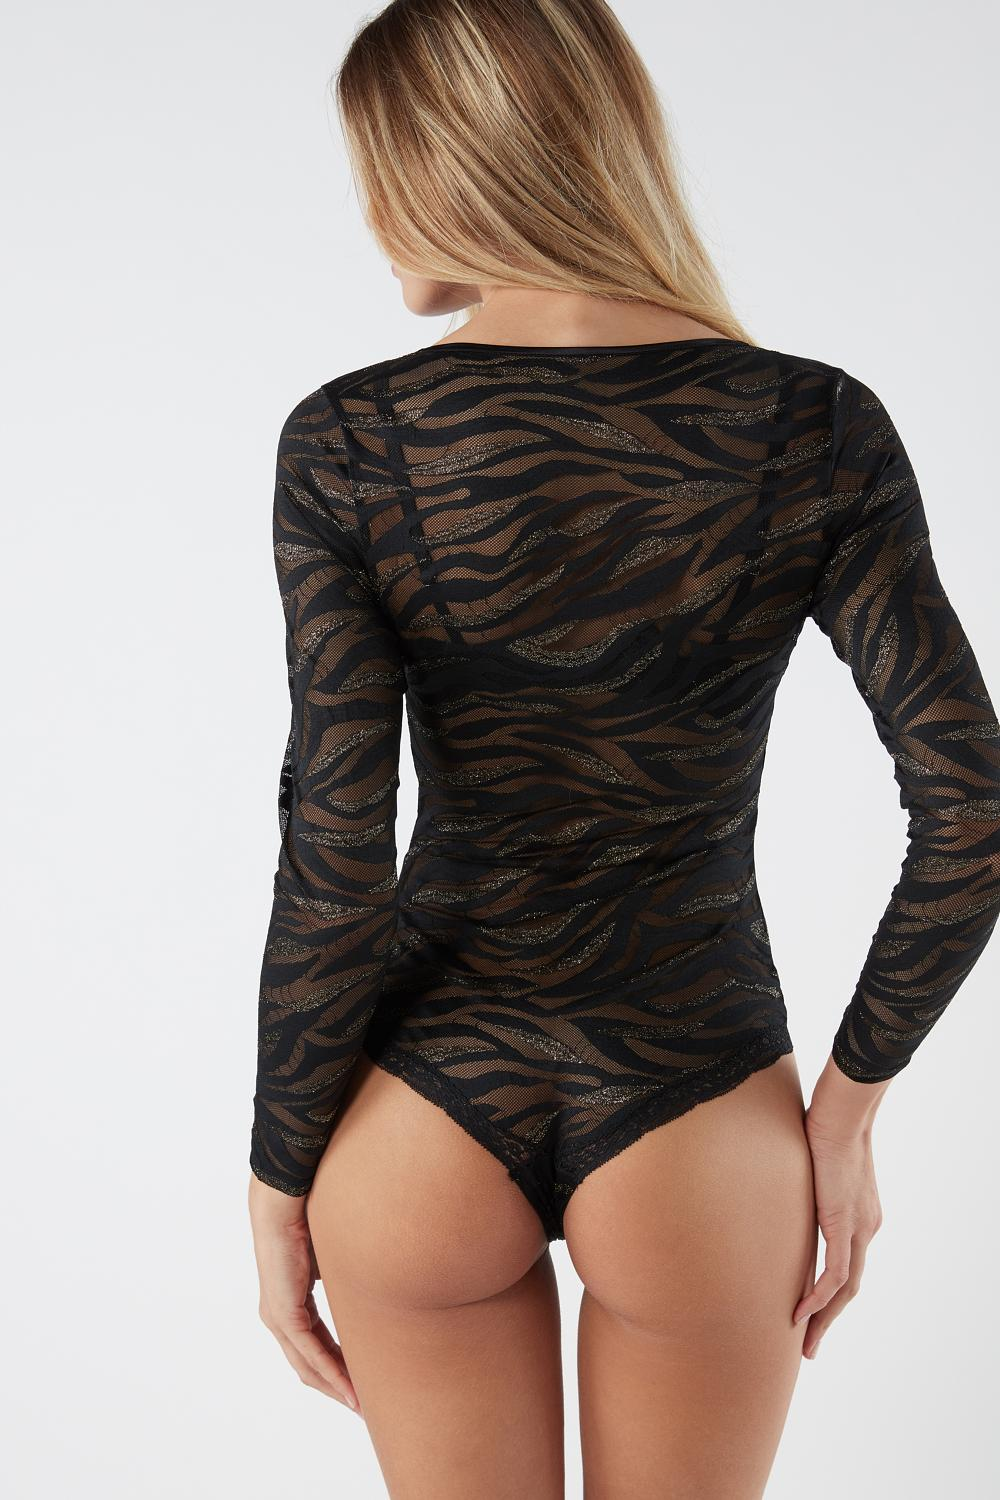 Wild Party Lace Body